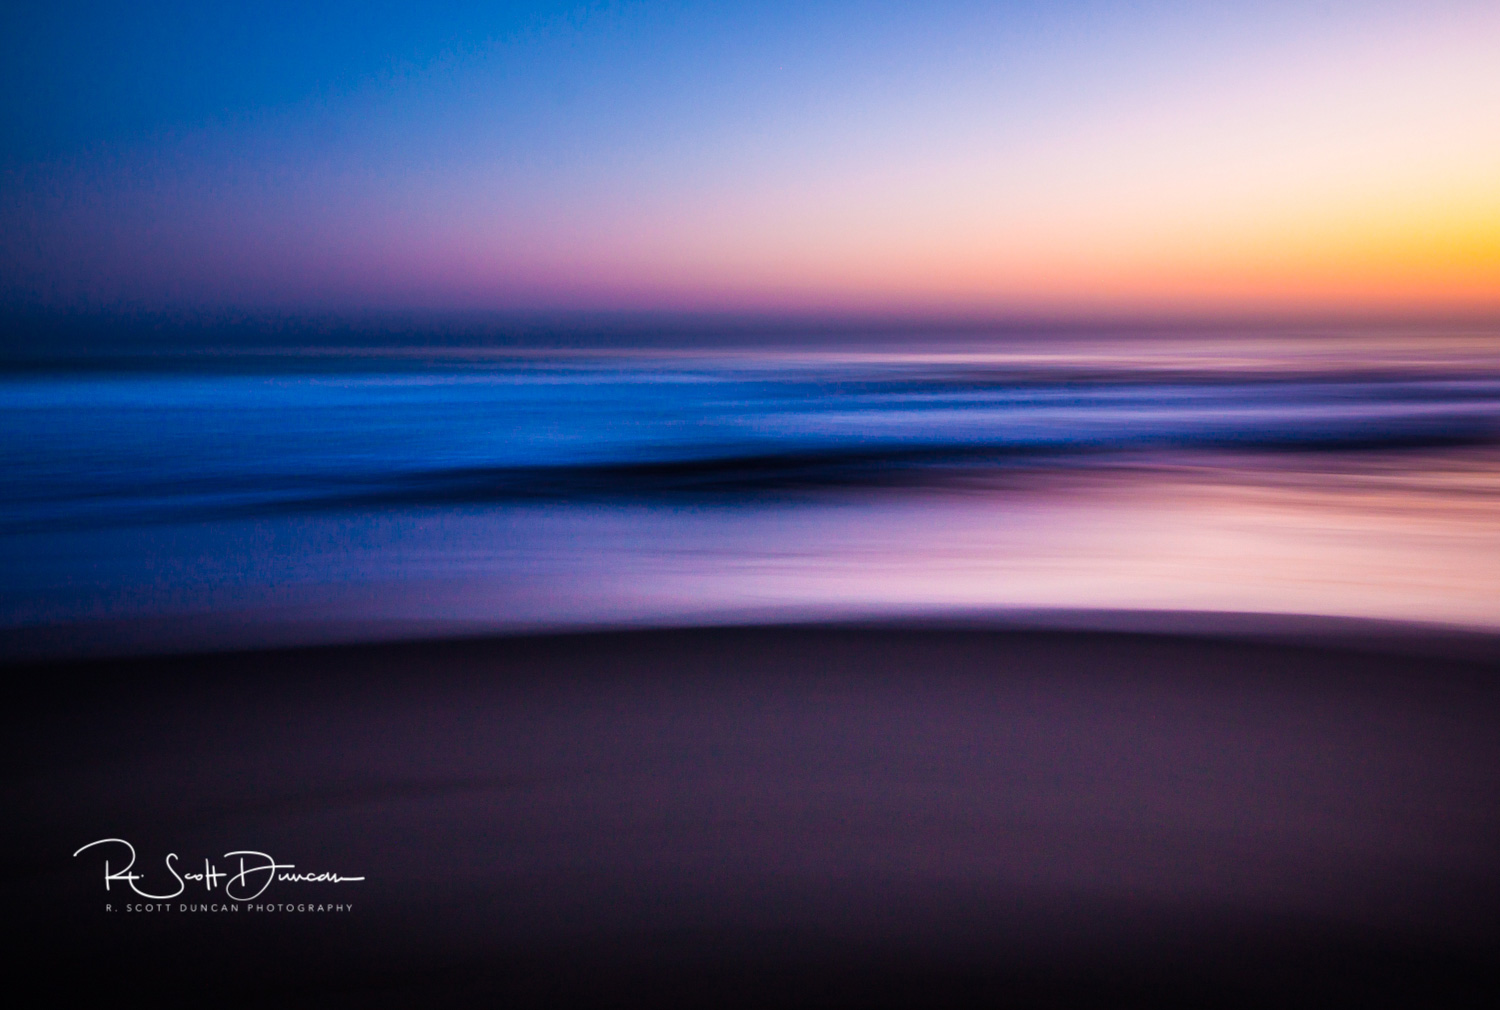 California Pacific Ocean Abstract - 2.4 seconds at F10